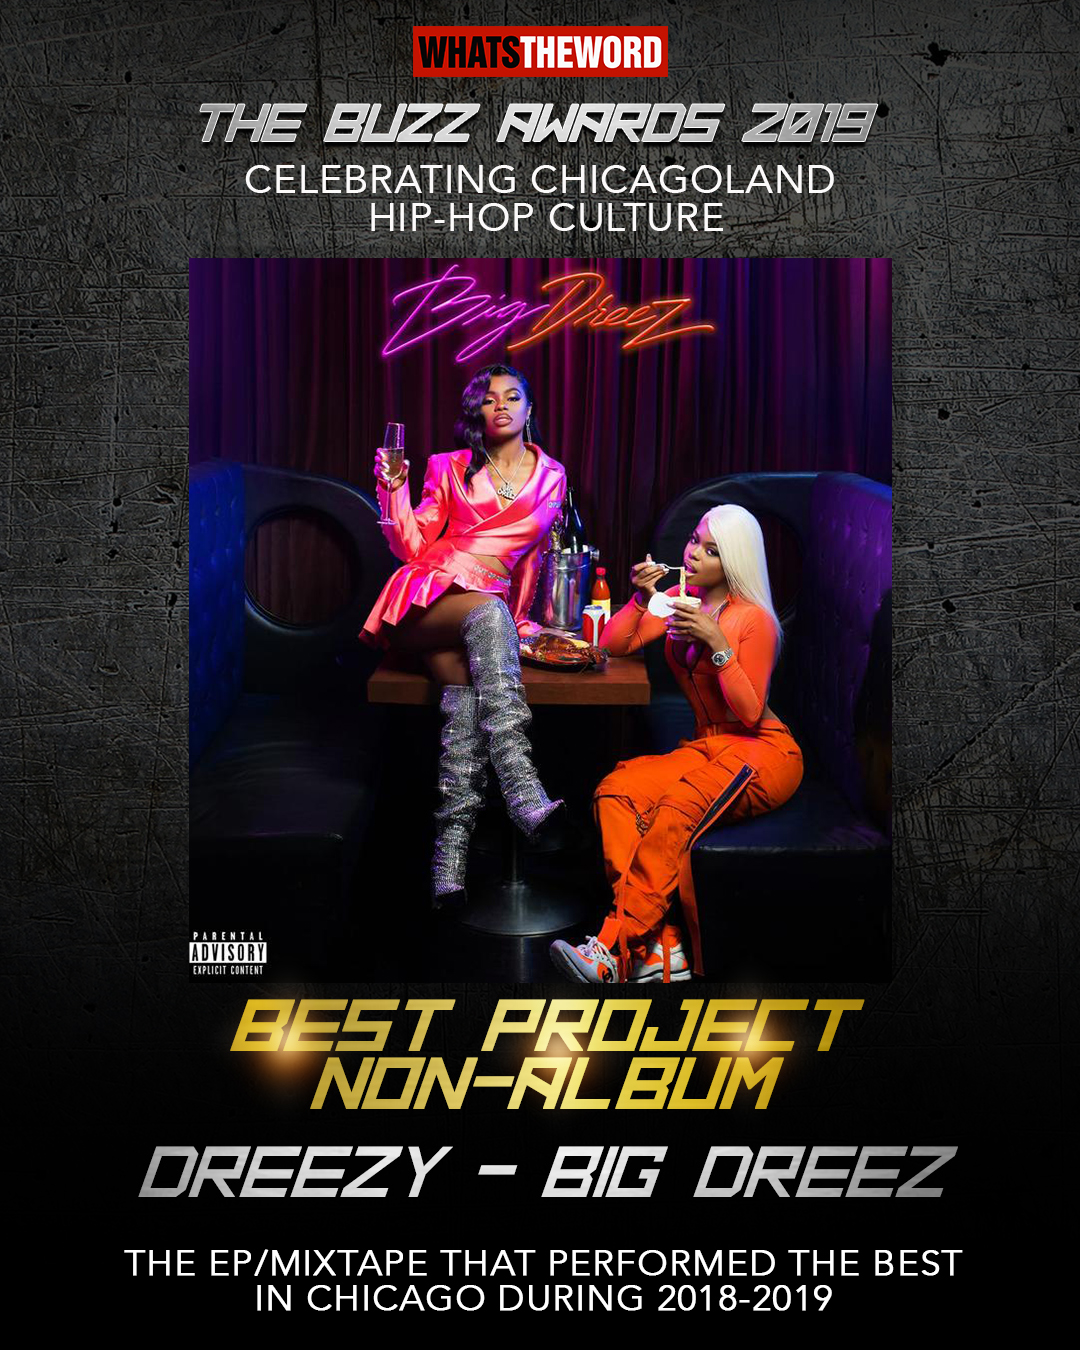 Best Project_The Buzz Awards 2019.jpg